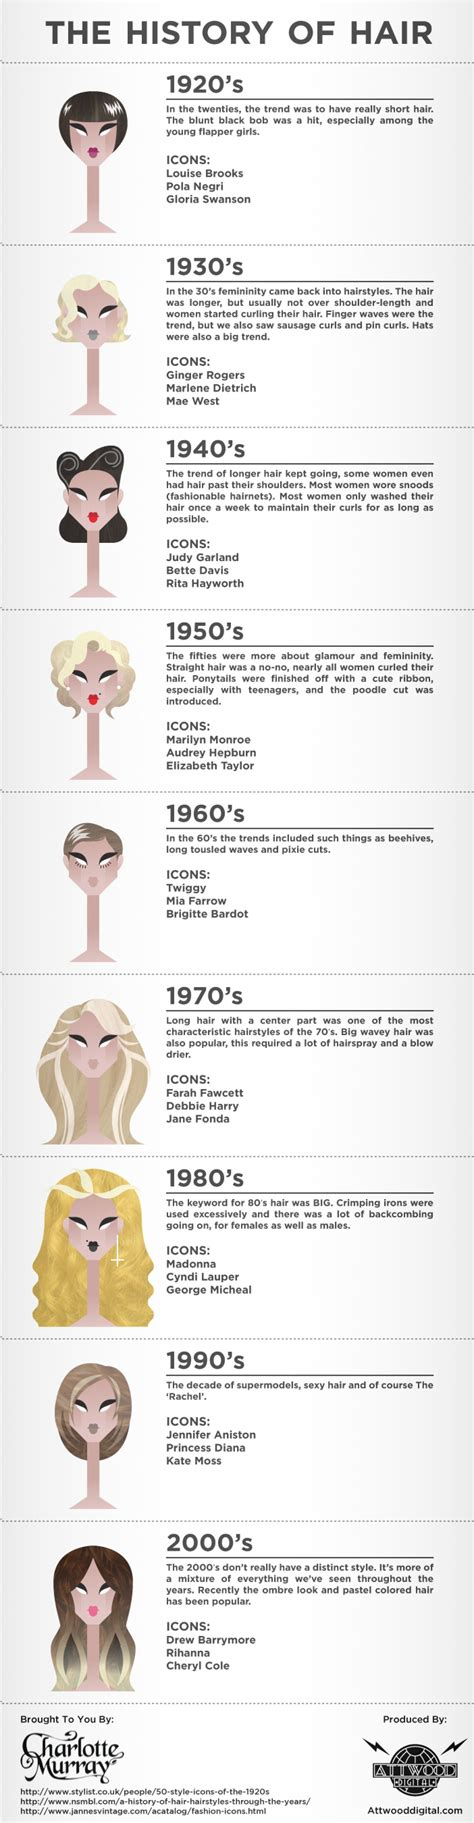 hairstyles history timeline the history of hair visual ly